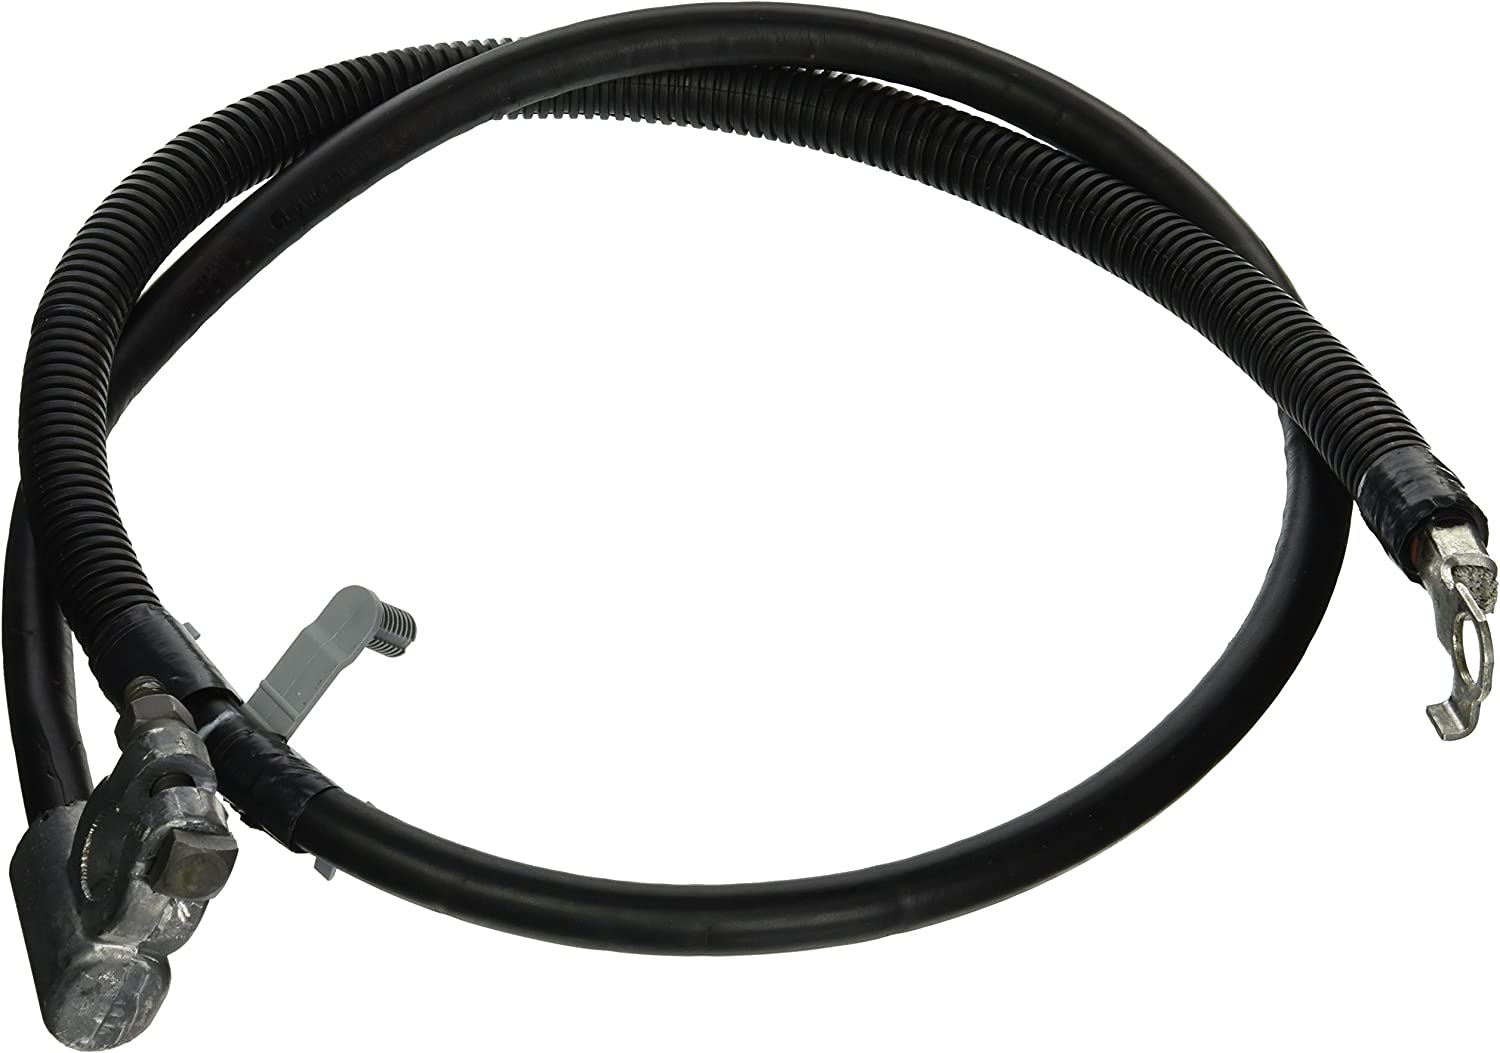 Motorcraft WC8982A Battery to Ground Cable